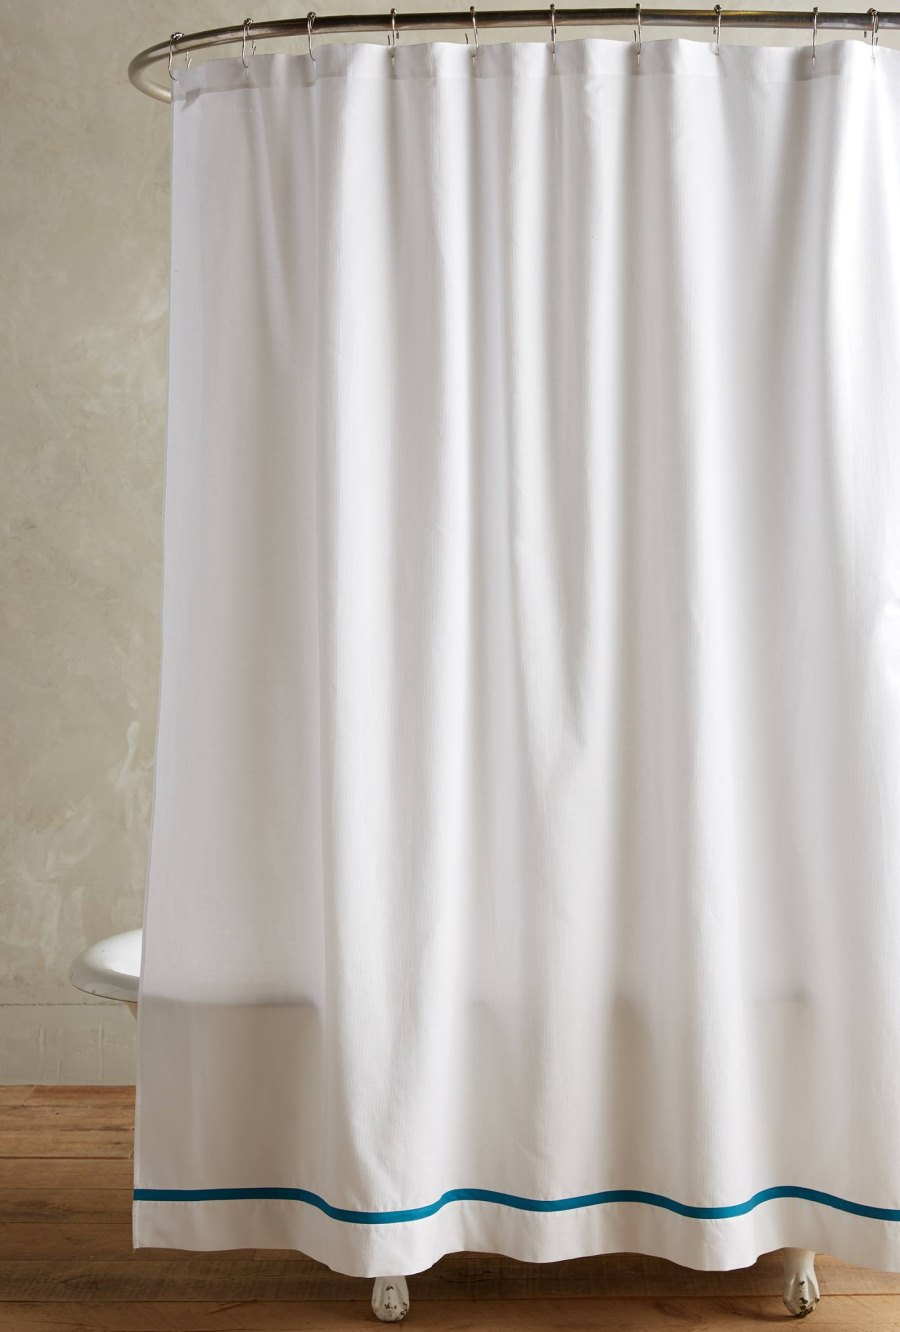 Pique cotton shower curtain from Anthropologie